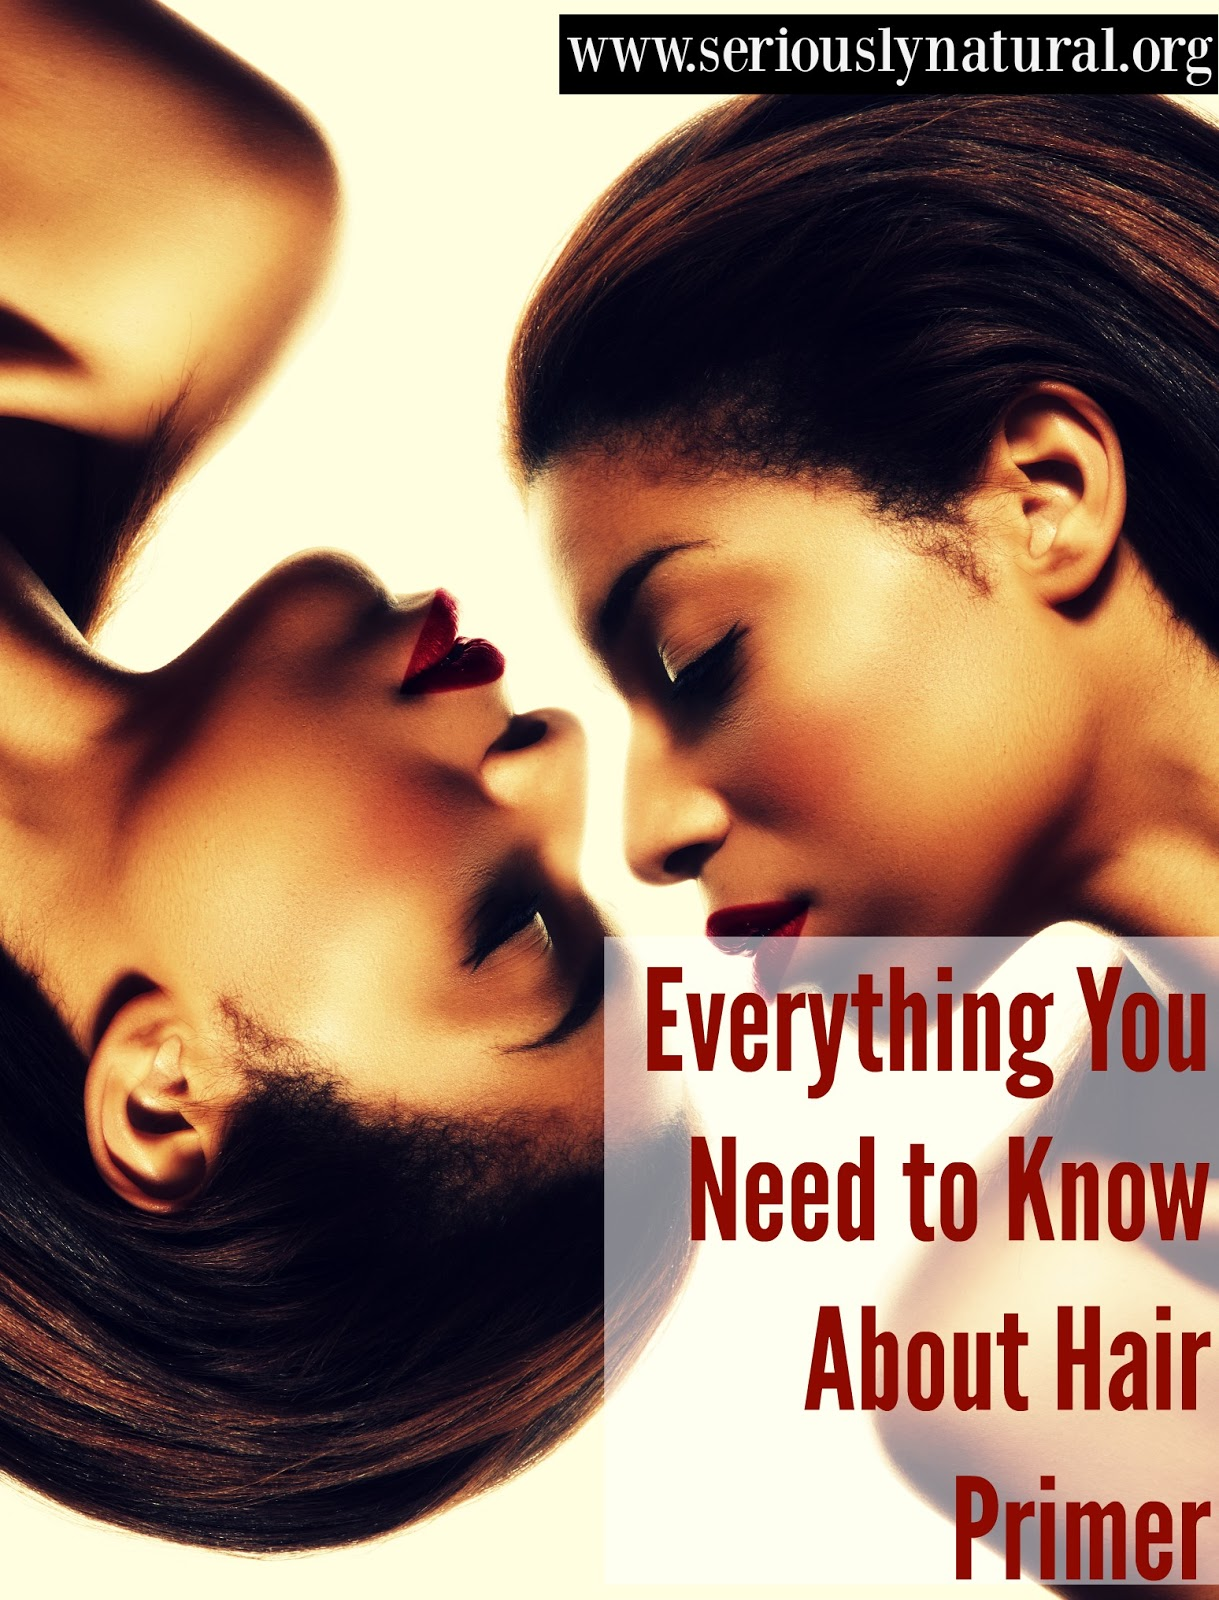 Everything You Need to Know About Hair Primer